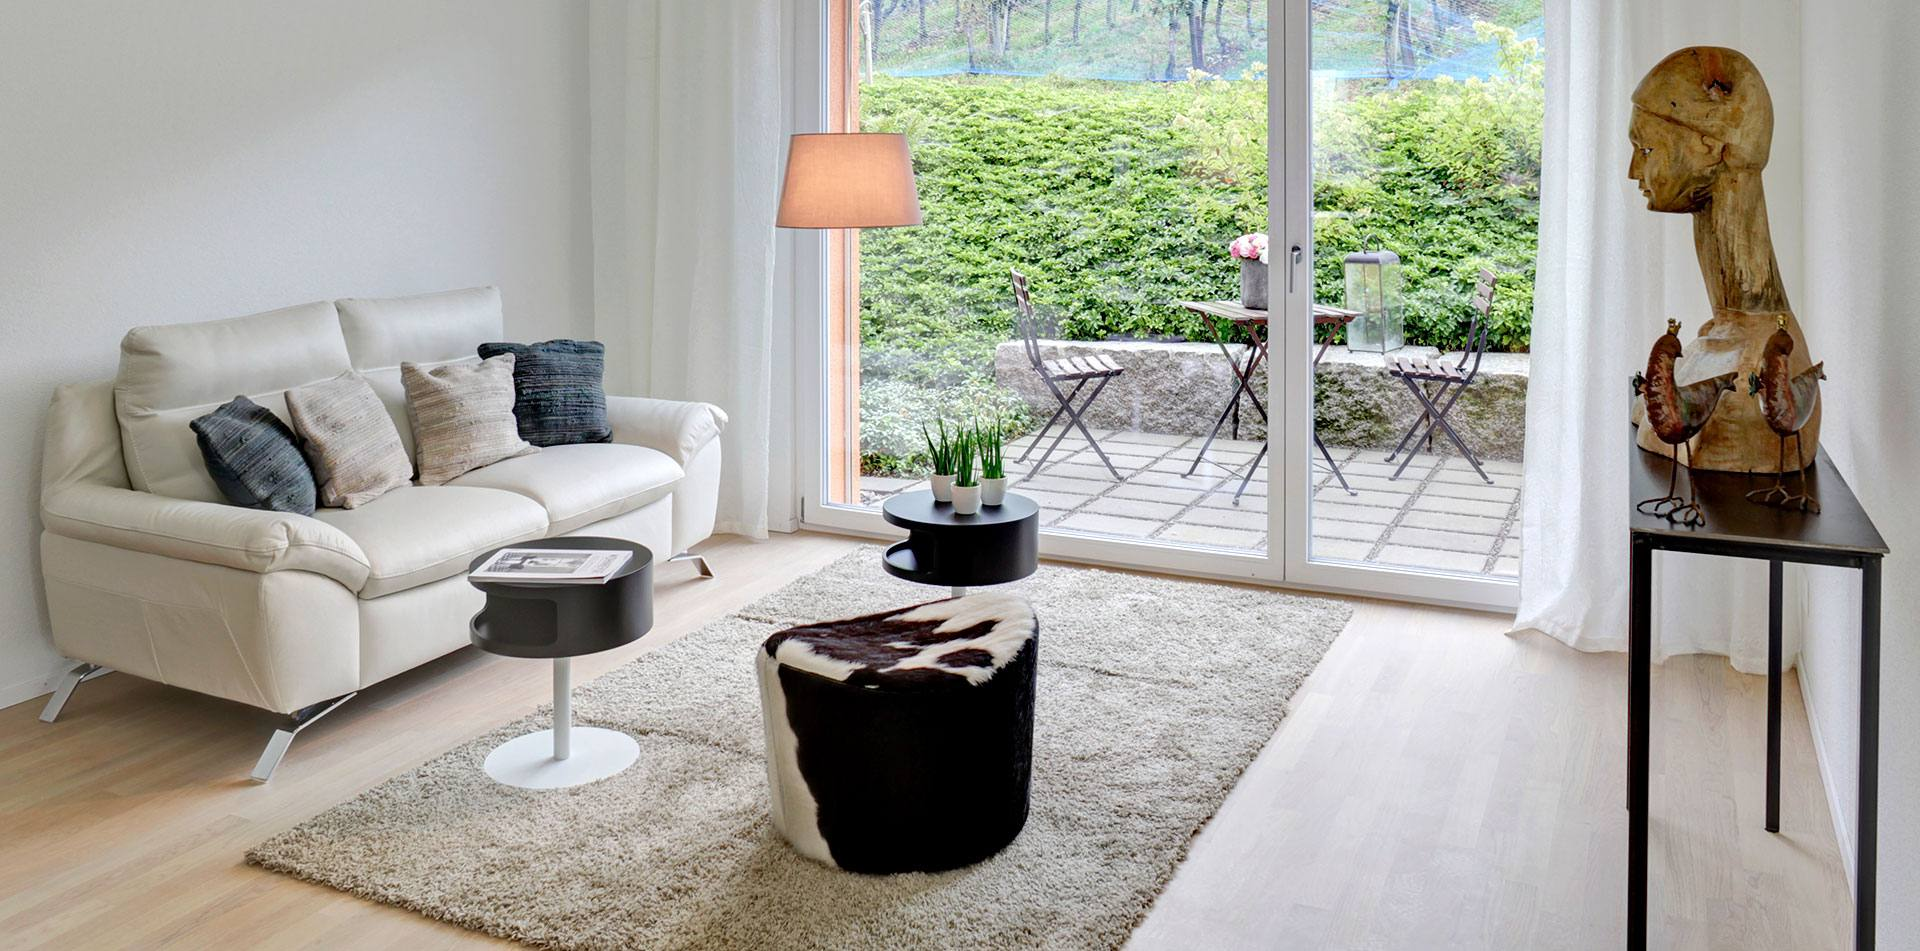 Home Styling by Kyburz Immobilienservice GmbH